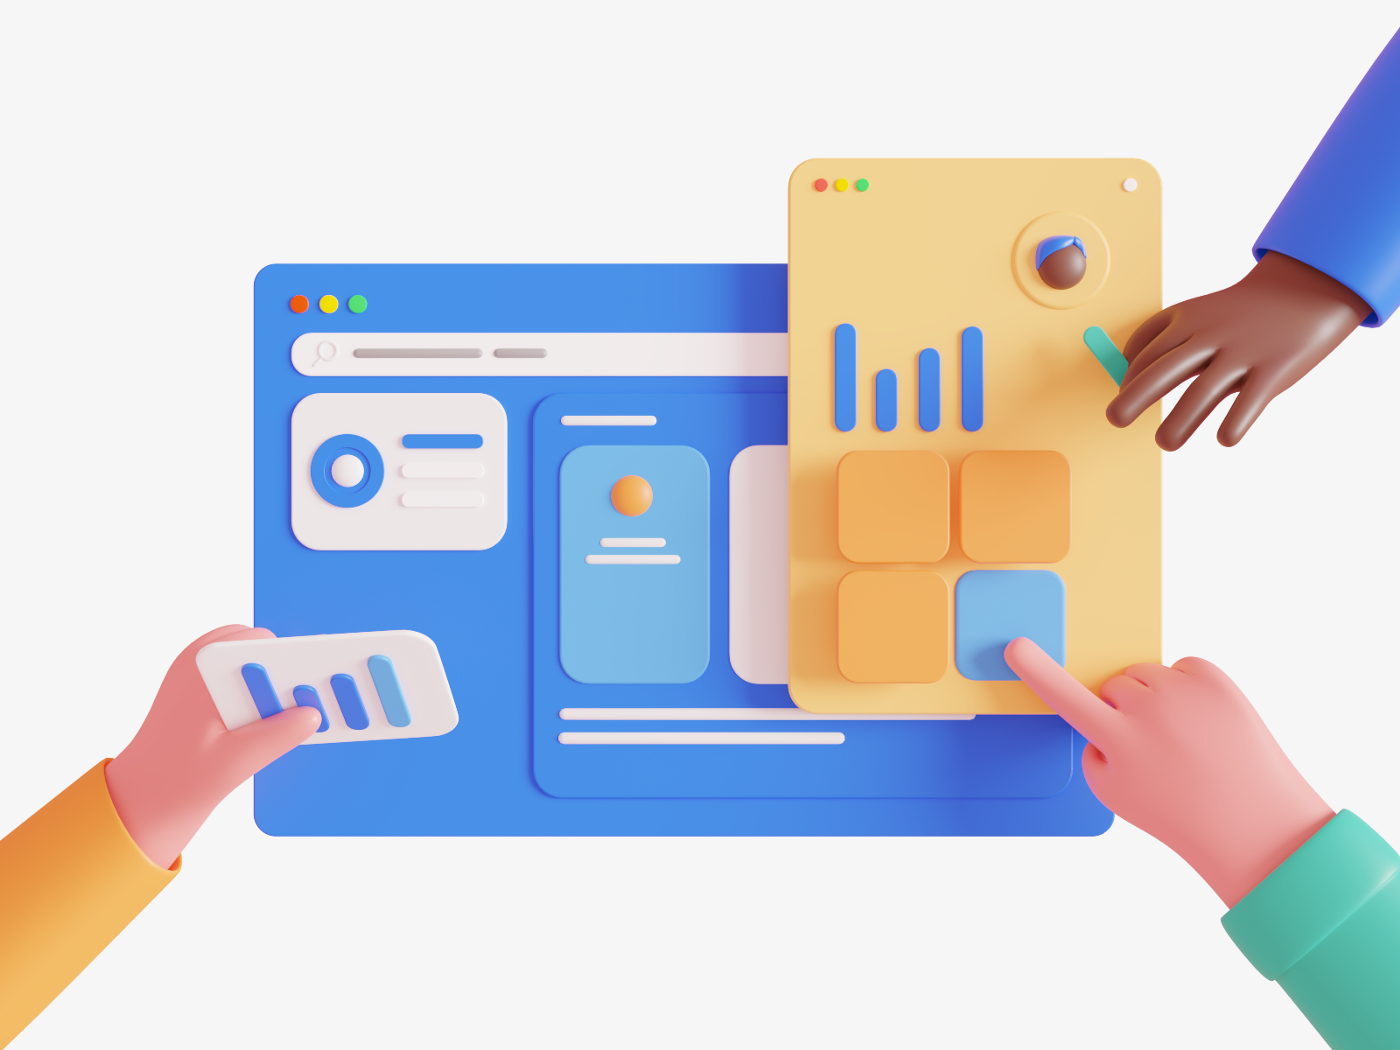 An 3D illustration of people putting user interface modules together.